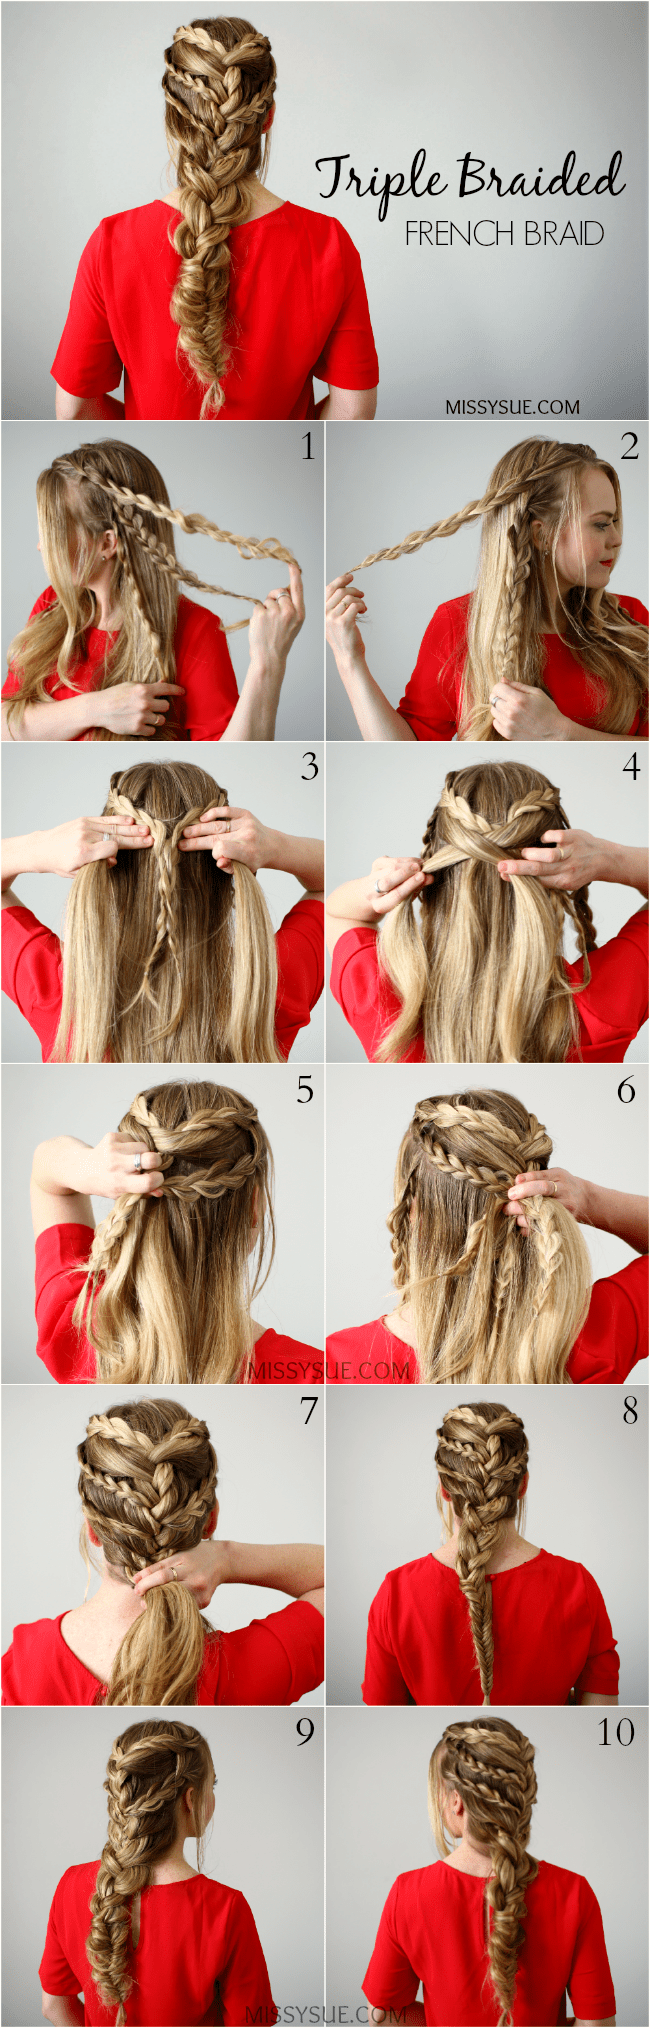 Triple-braided-french-braid